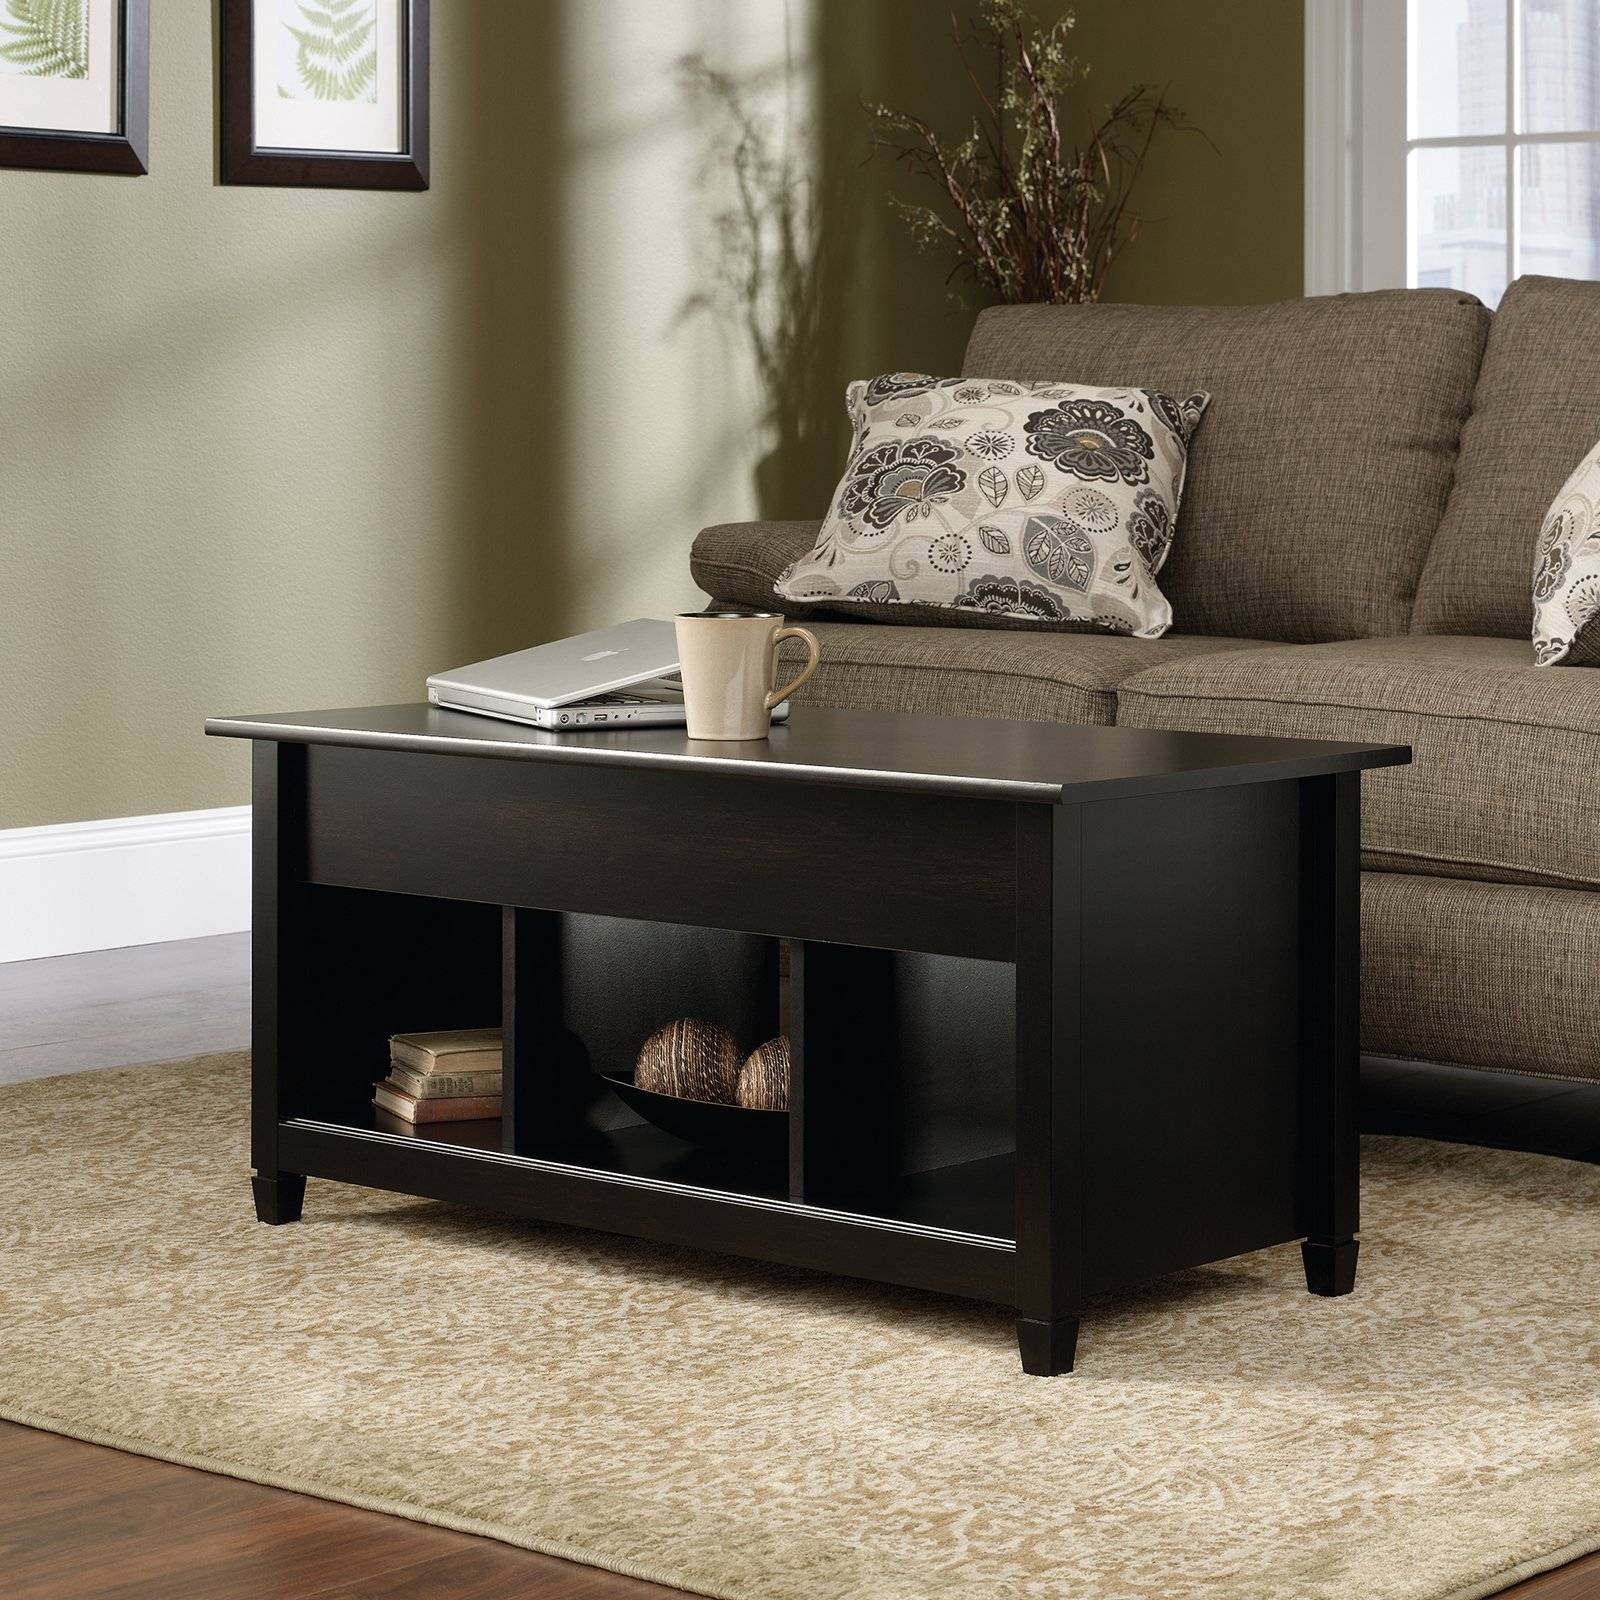 Belham Living Hampton Storage And Lift Top Coffee Table | Hayneedle in Coffee Tables With Lift Top Storage (Image 2 of 30)